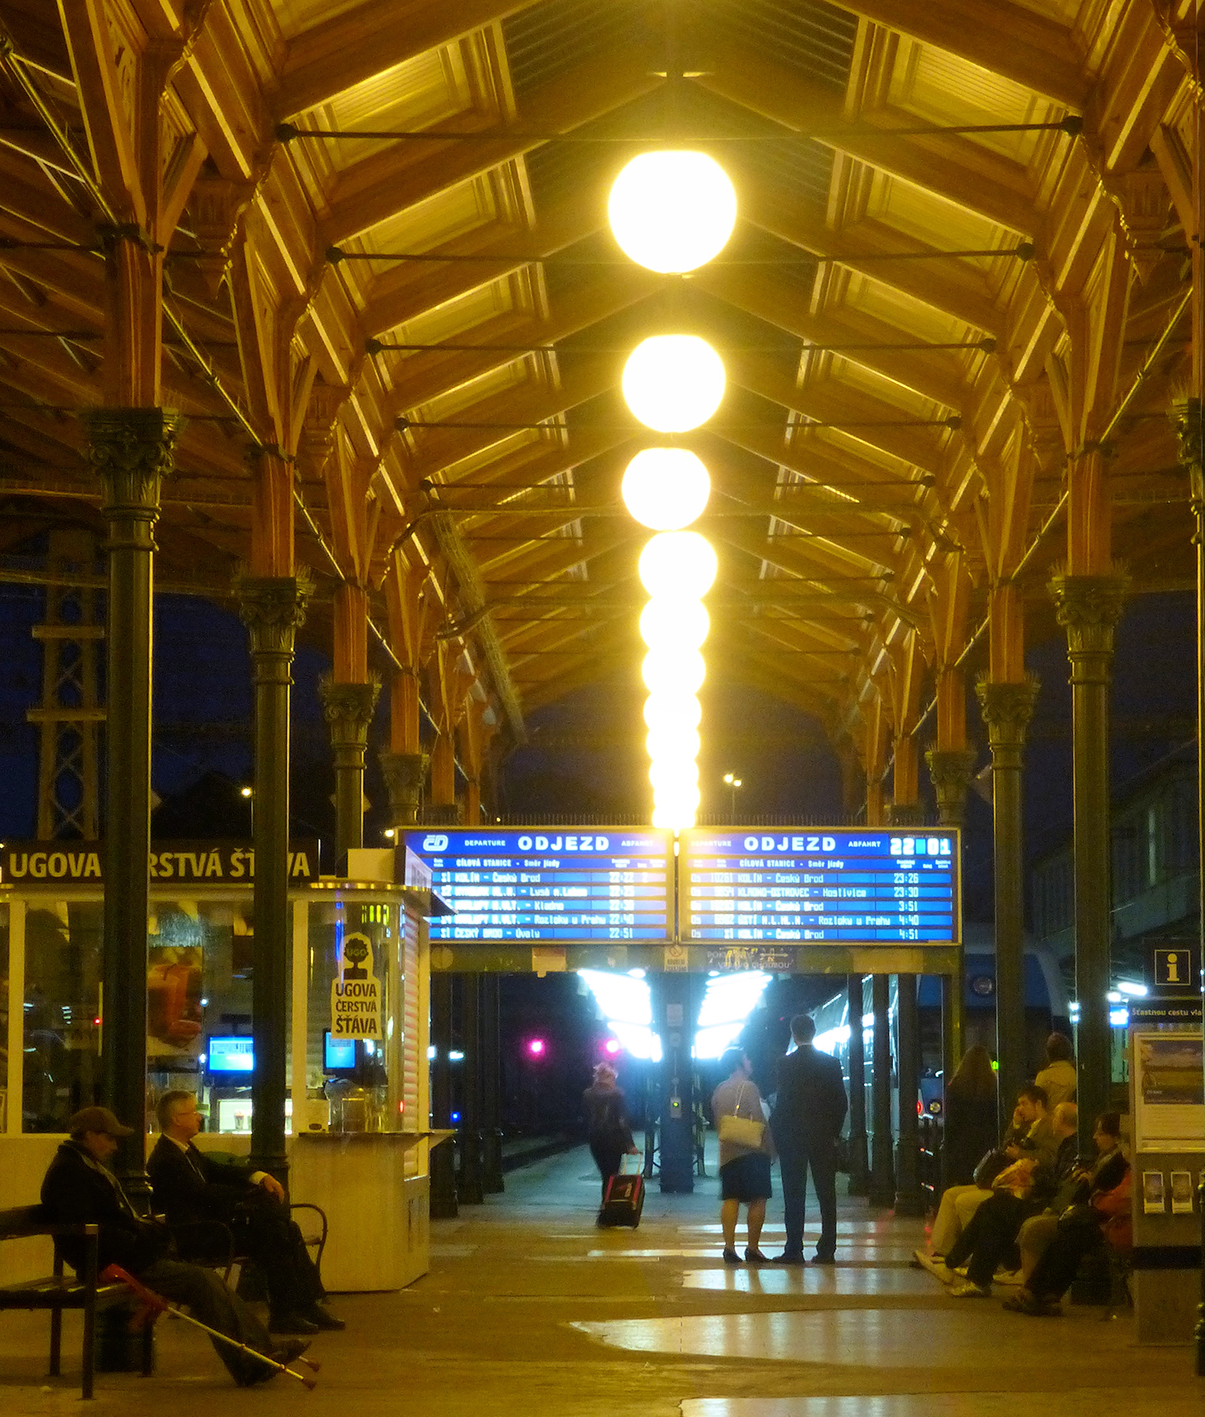 2.Prague Masaryk railway station